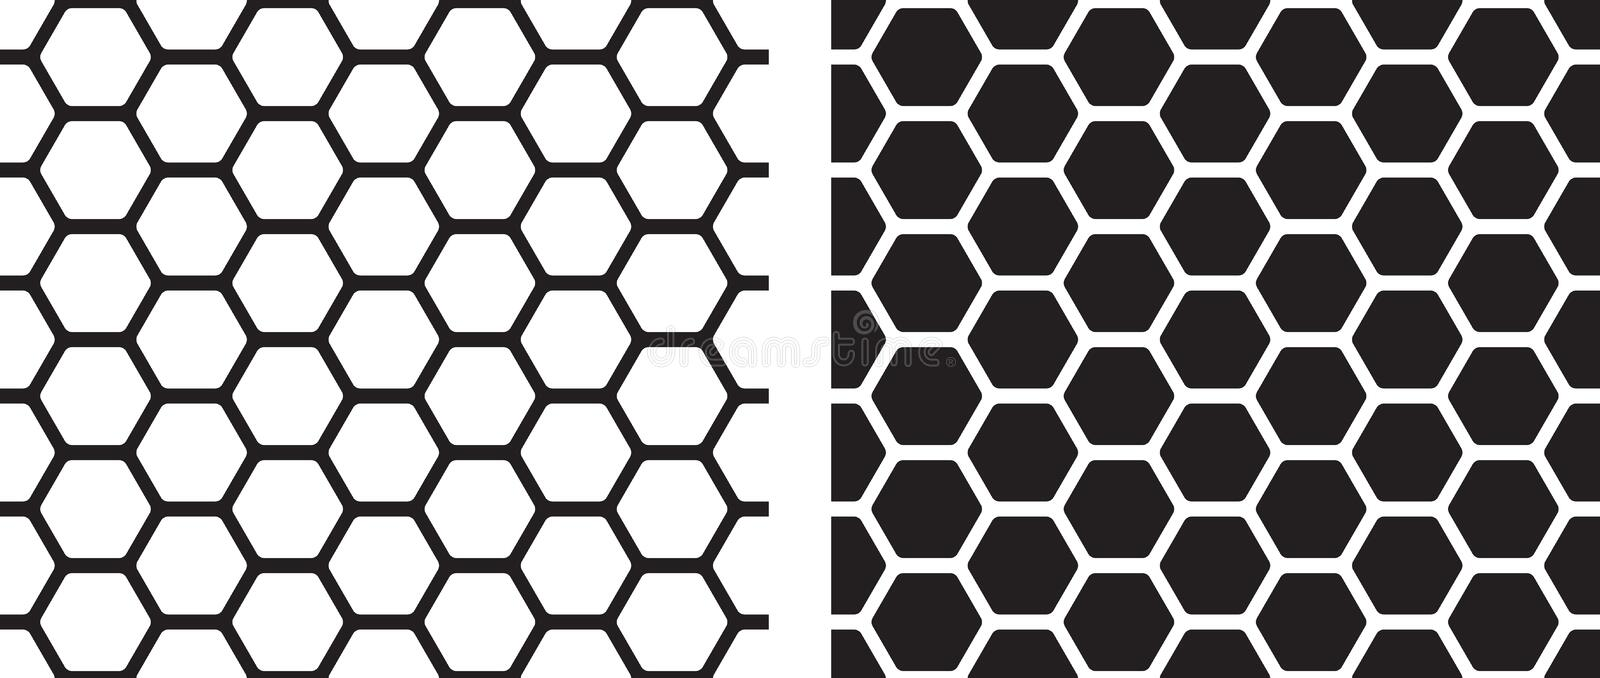 Seamless texture of honeycomb. Vector illustration of seamless texture of honeycomb in black and white colors royalty free illustration